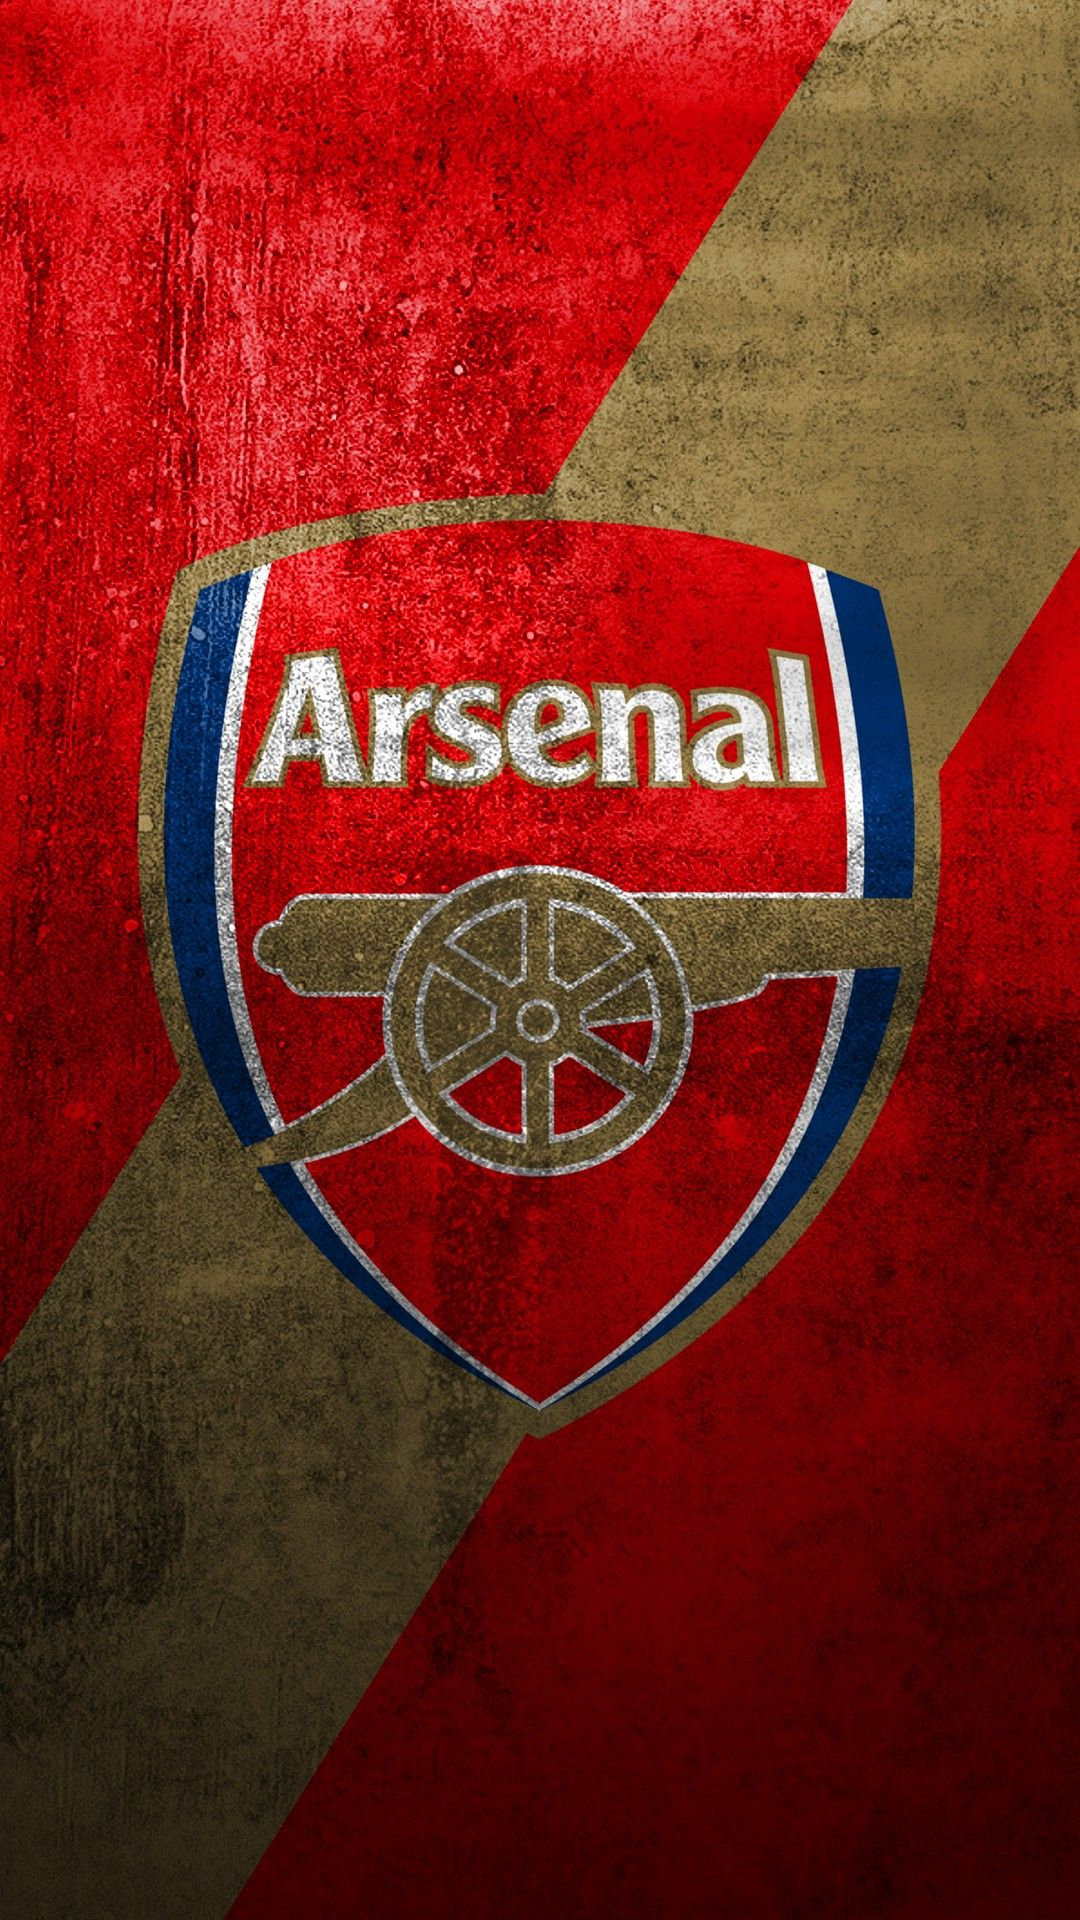 26] Arsenal 2019 Wallpapers on WallpaperSafari 1080x1920